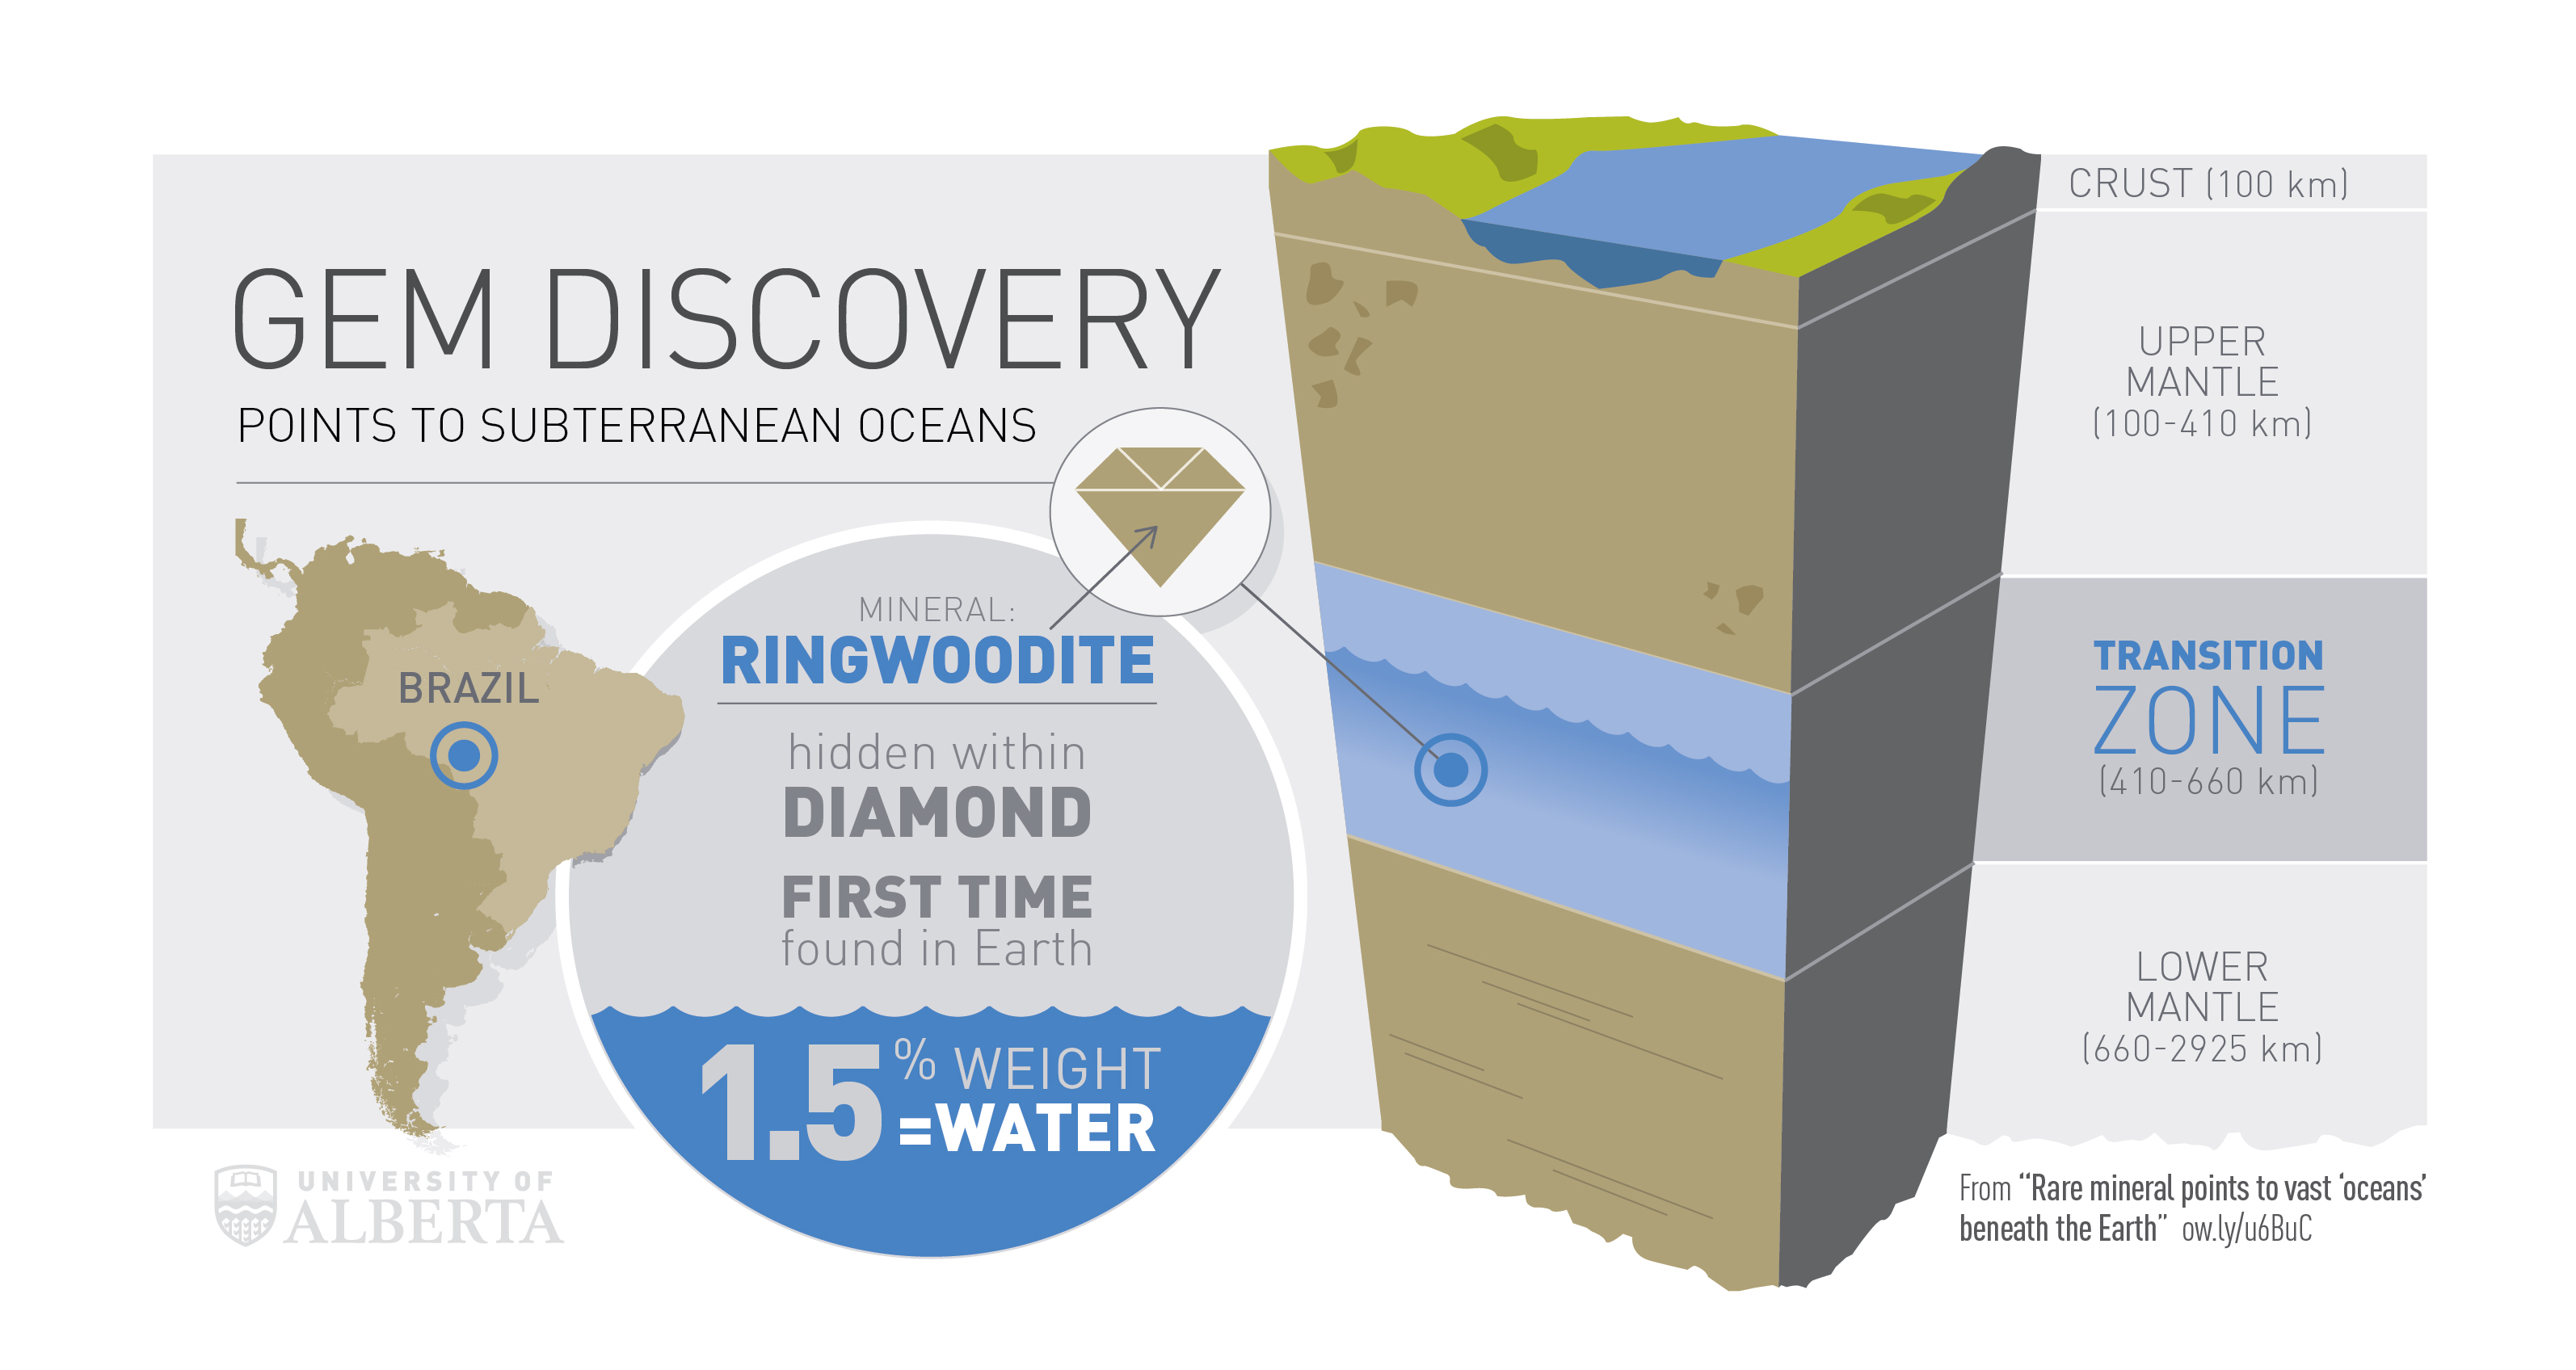 Water into the depths of the earth environmental biogeochemistry water into the depths of the earth ccuart Choice Image